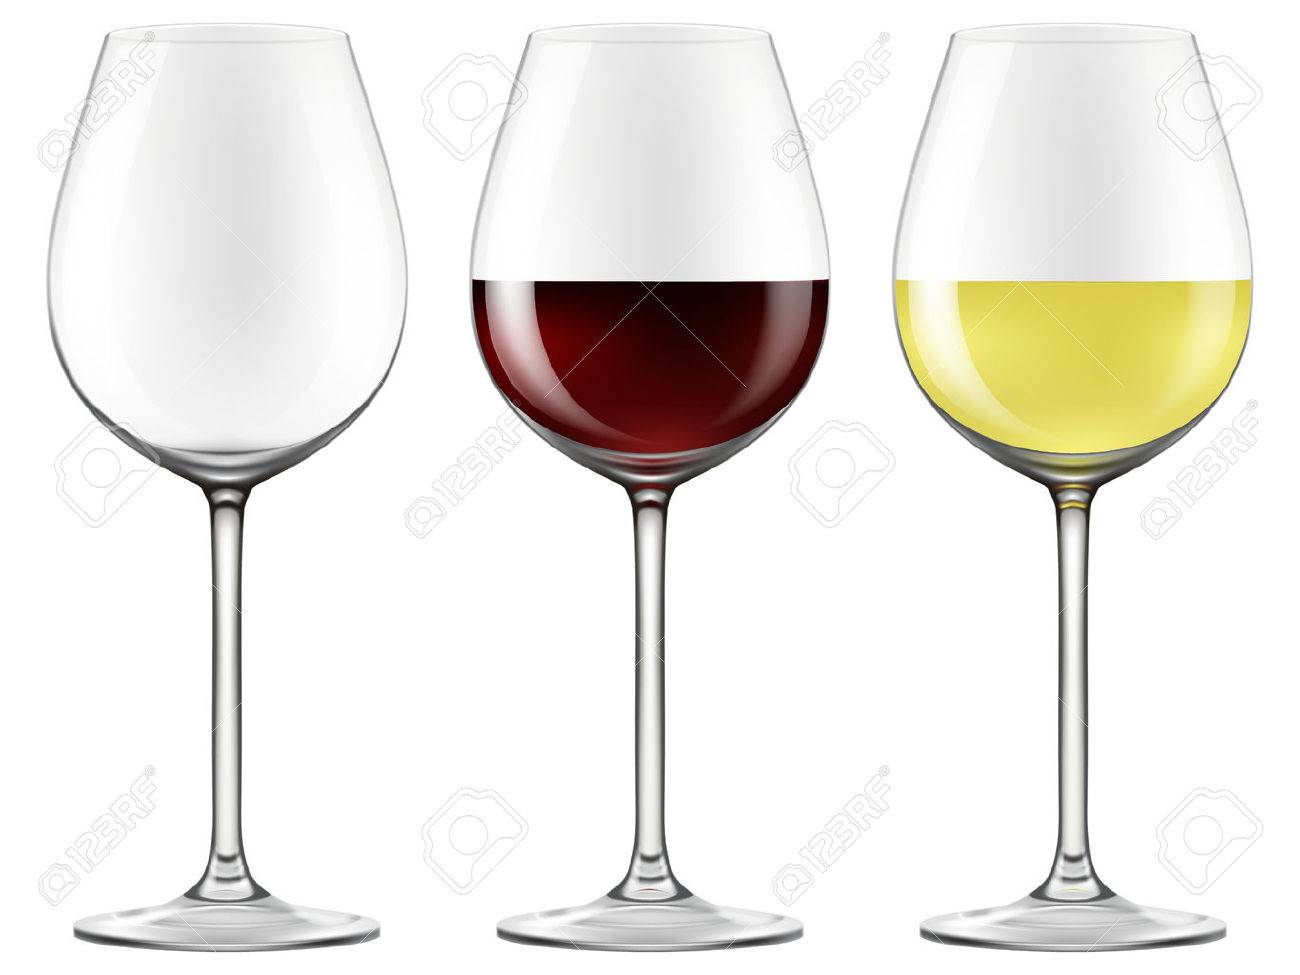 Wine glasses - empty, red wine and white wine. Photo-realistic EPS10 Vector. - 50004929